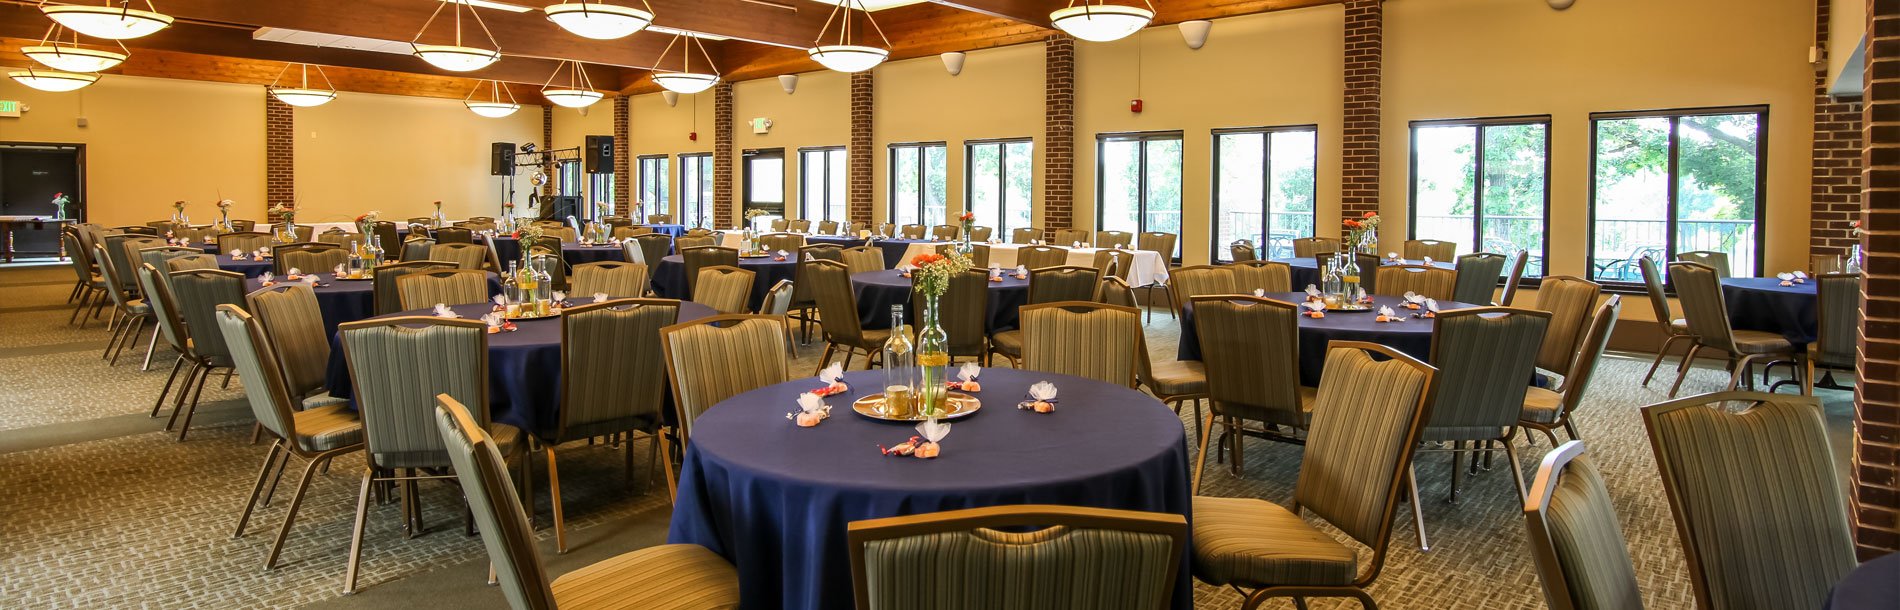 Event space with tables at Braemar Golf Course